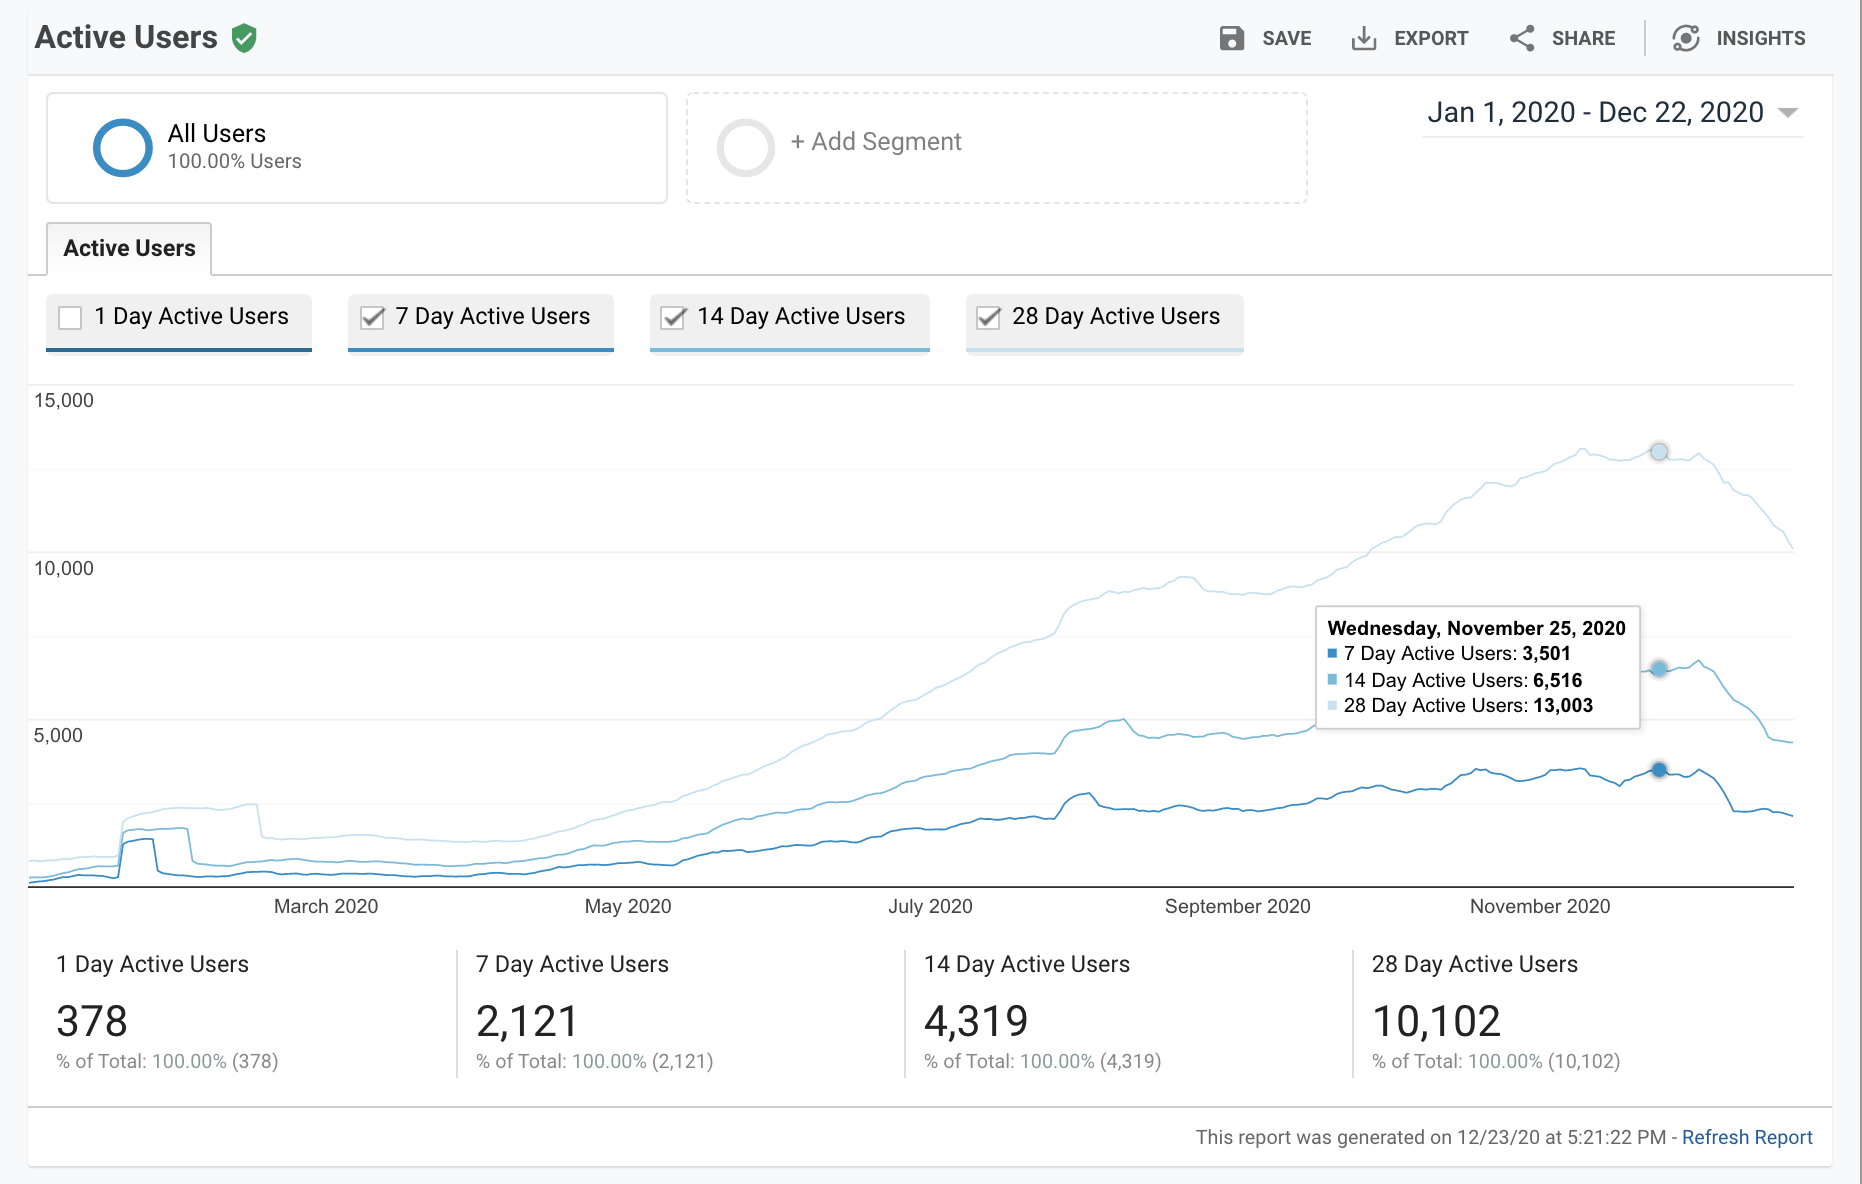 Traffic Growth to 10,000 Users